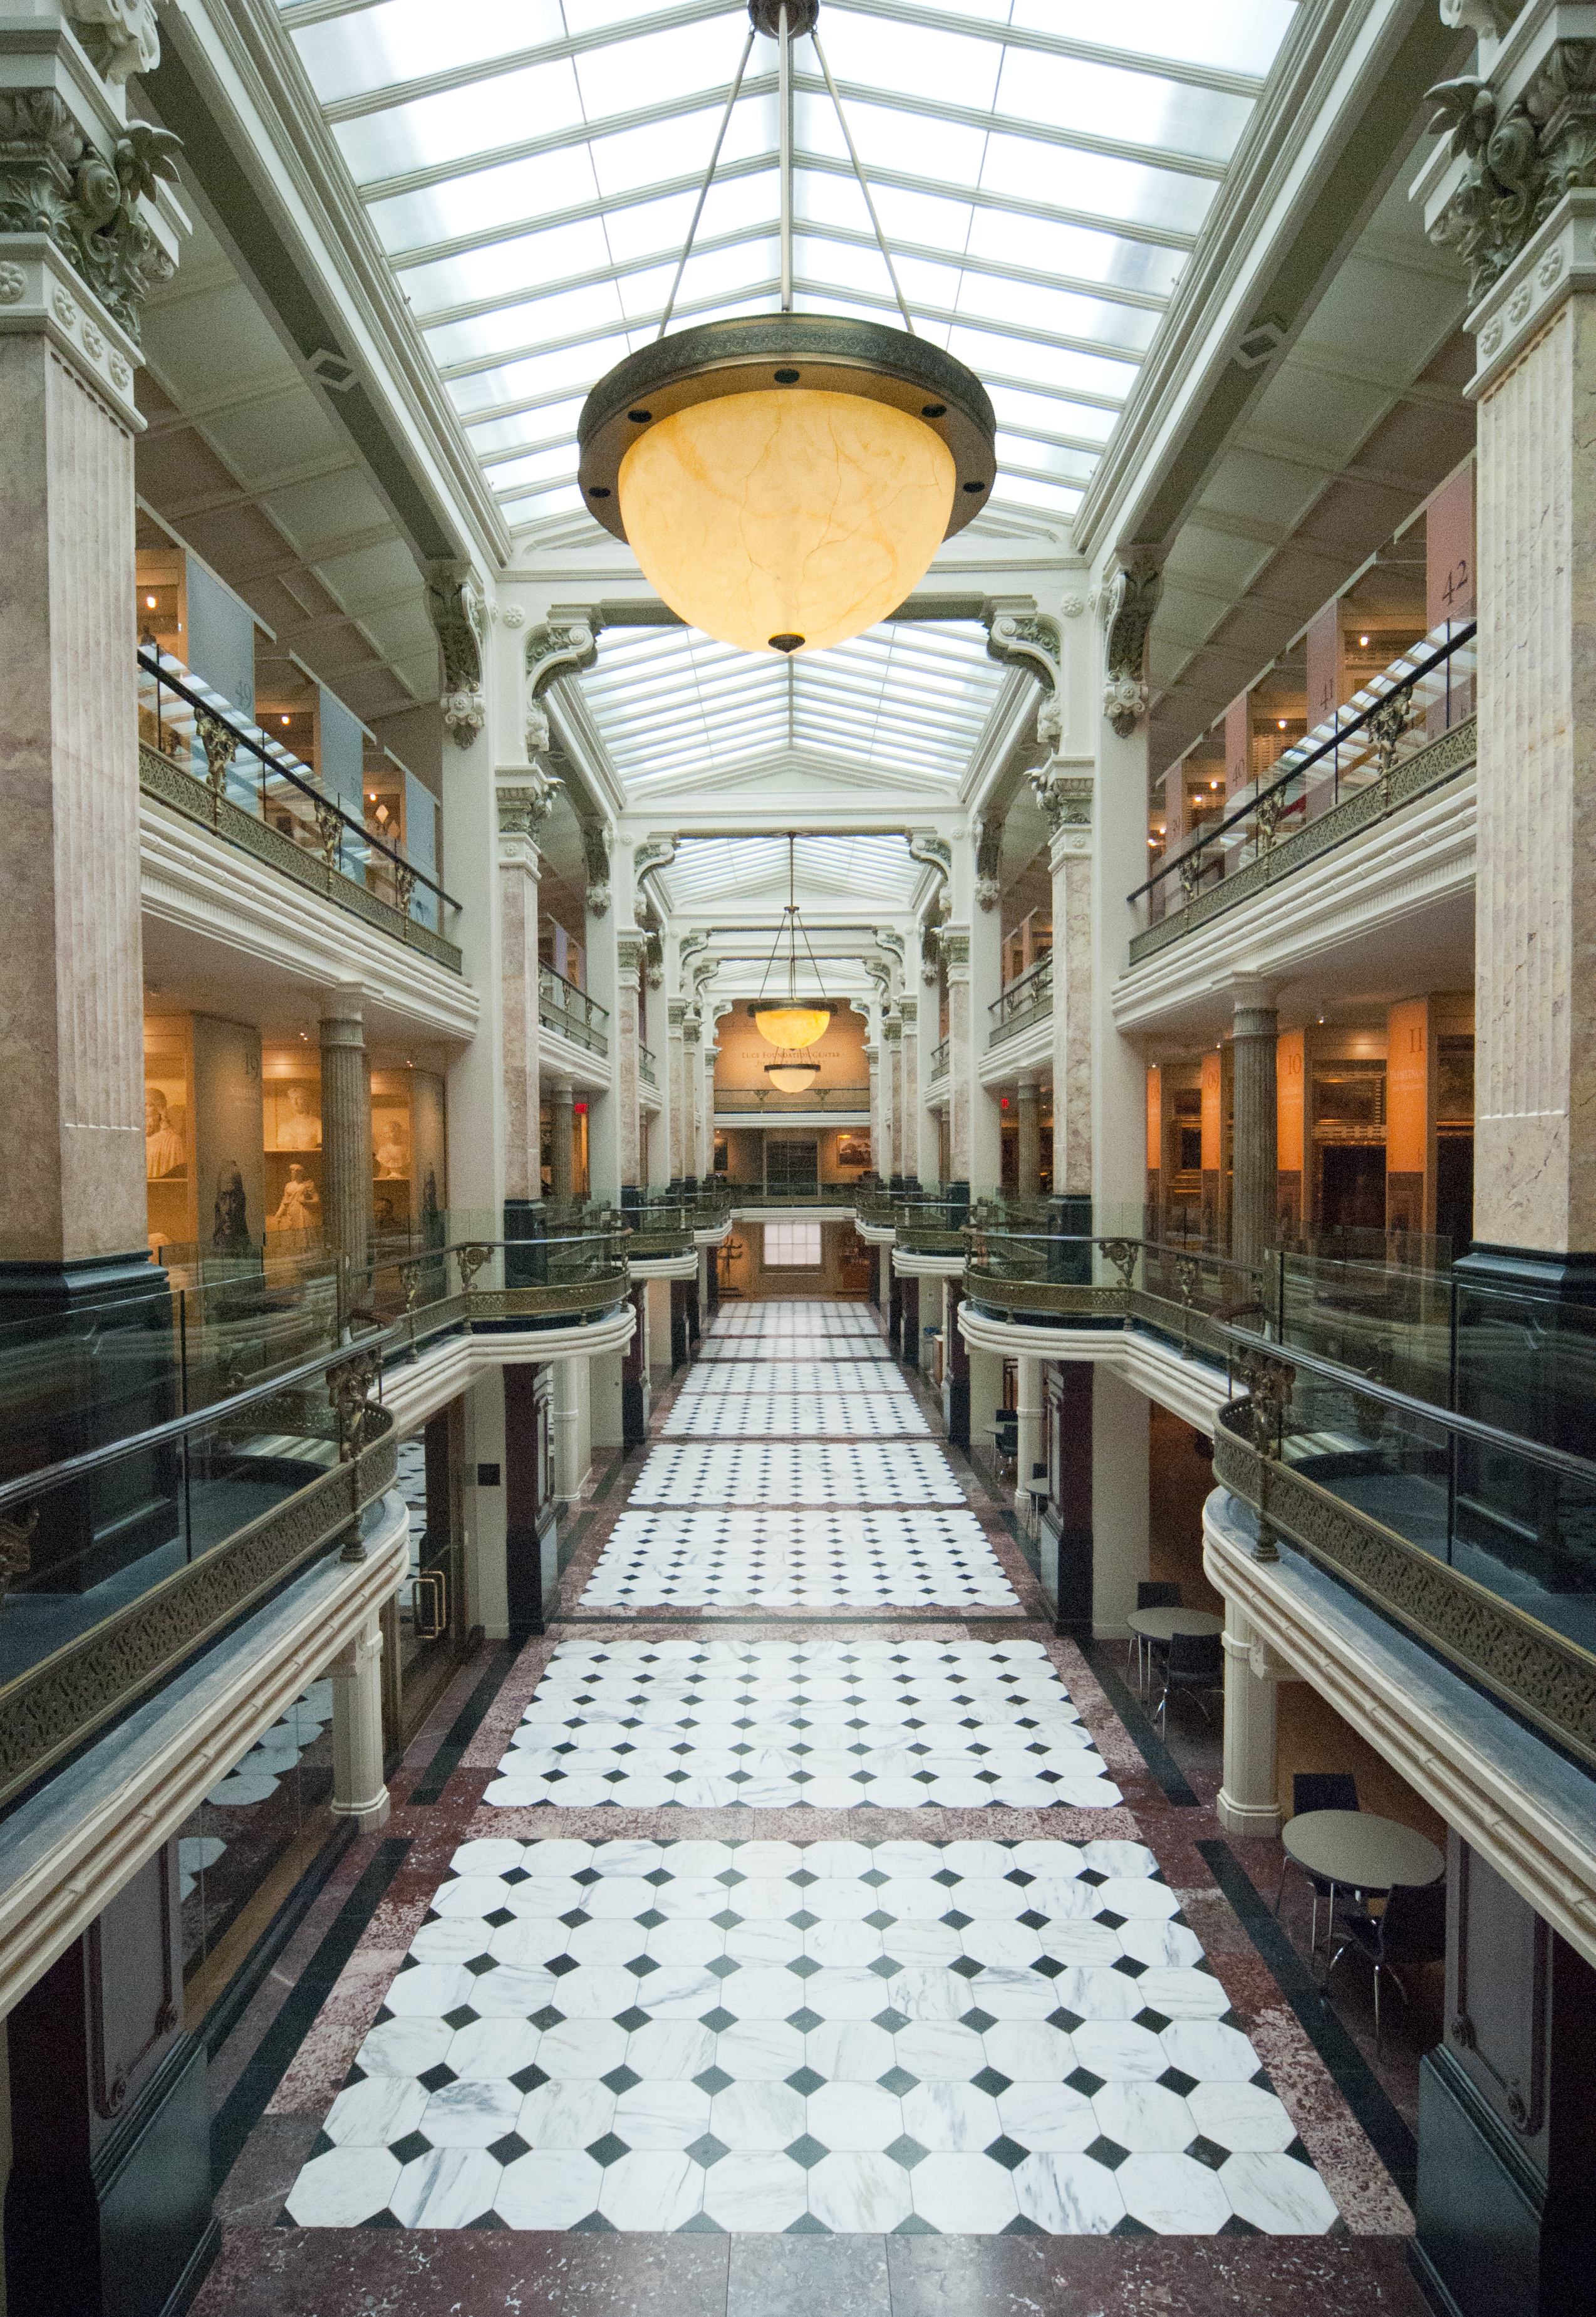 The Luce Foundation Center for American Art on the third and fourth floor of the Smithsonian American Art Museum. Image by Zack Frank. Licensed under CC BY-SA 3.0 via Wikimedia Commons.